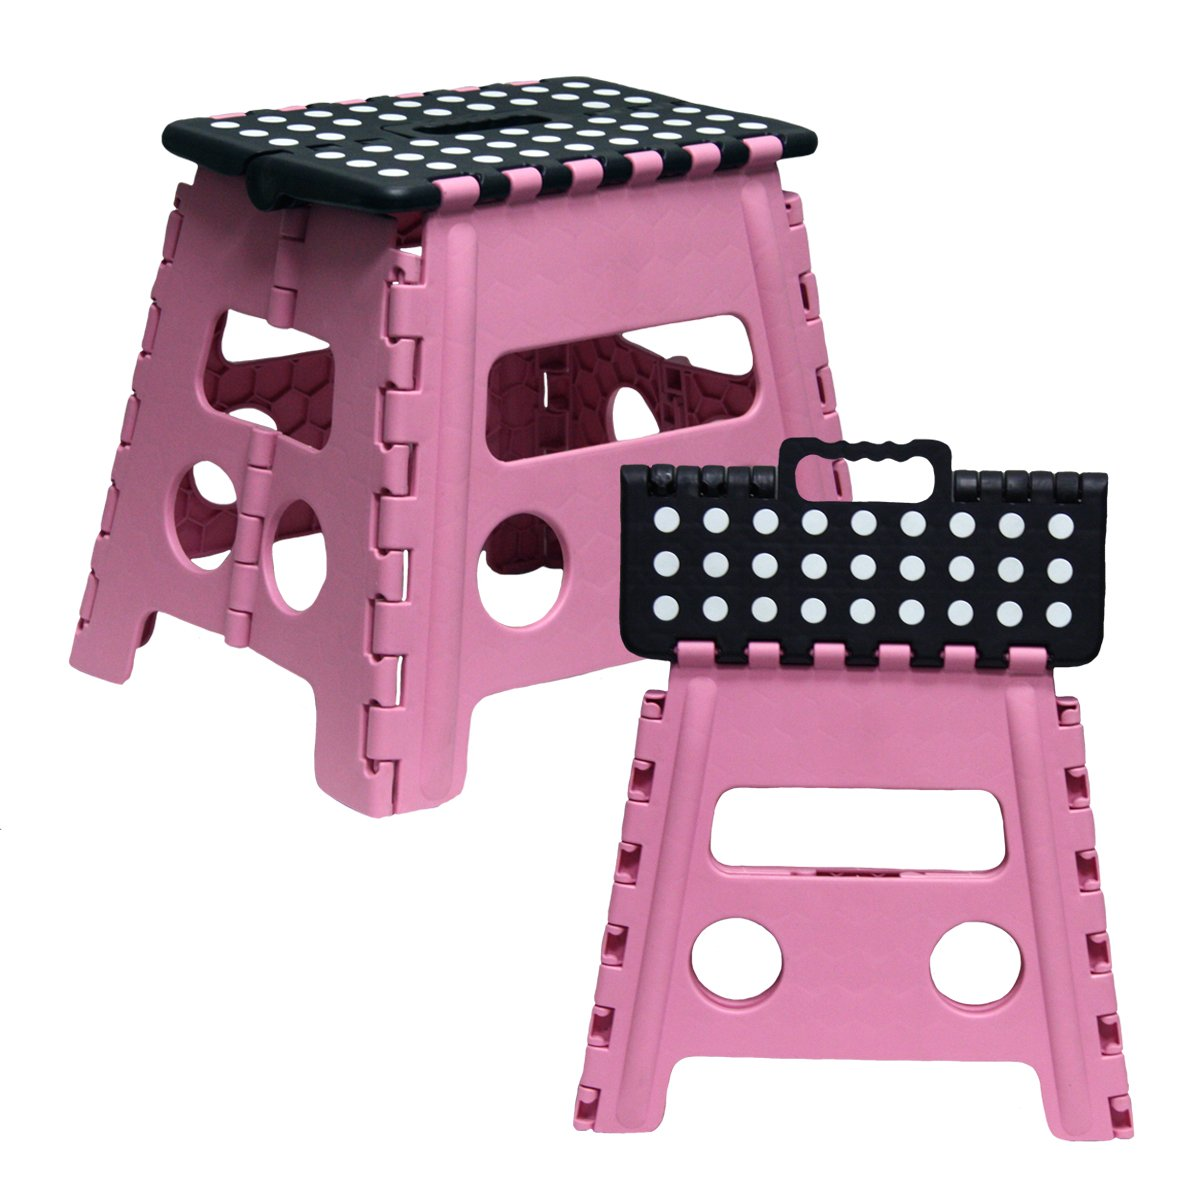 Grip Pink Foldable Step Stool  Amazon.co.uk  Kitchen   Home 945dce1328